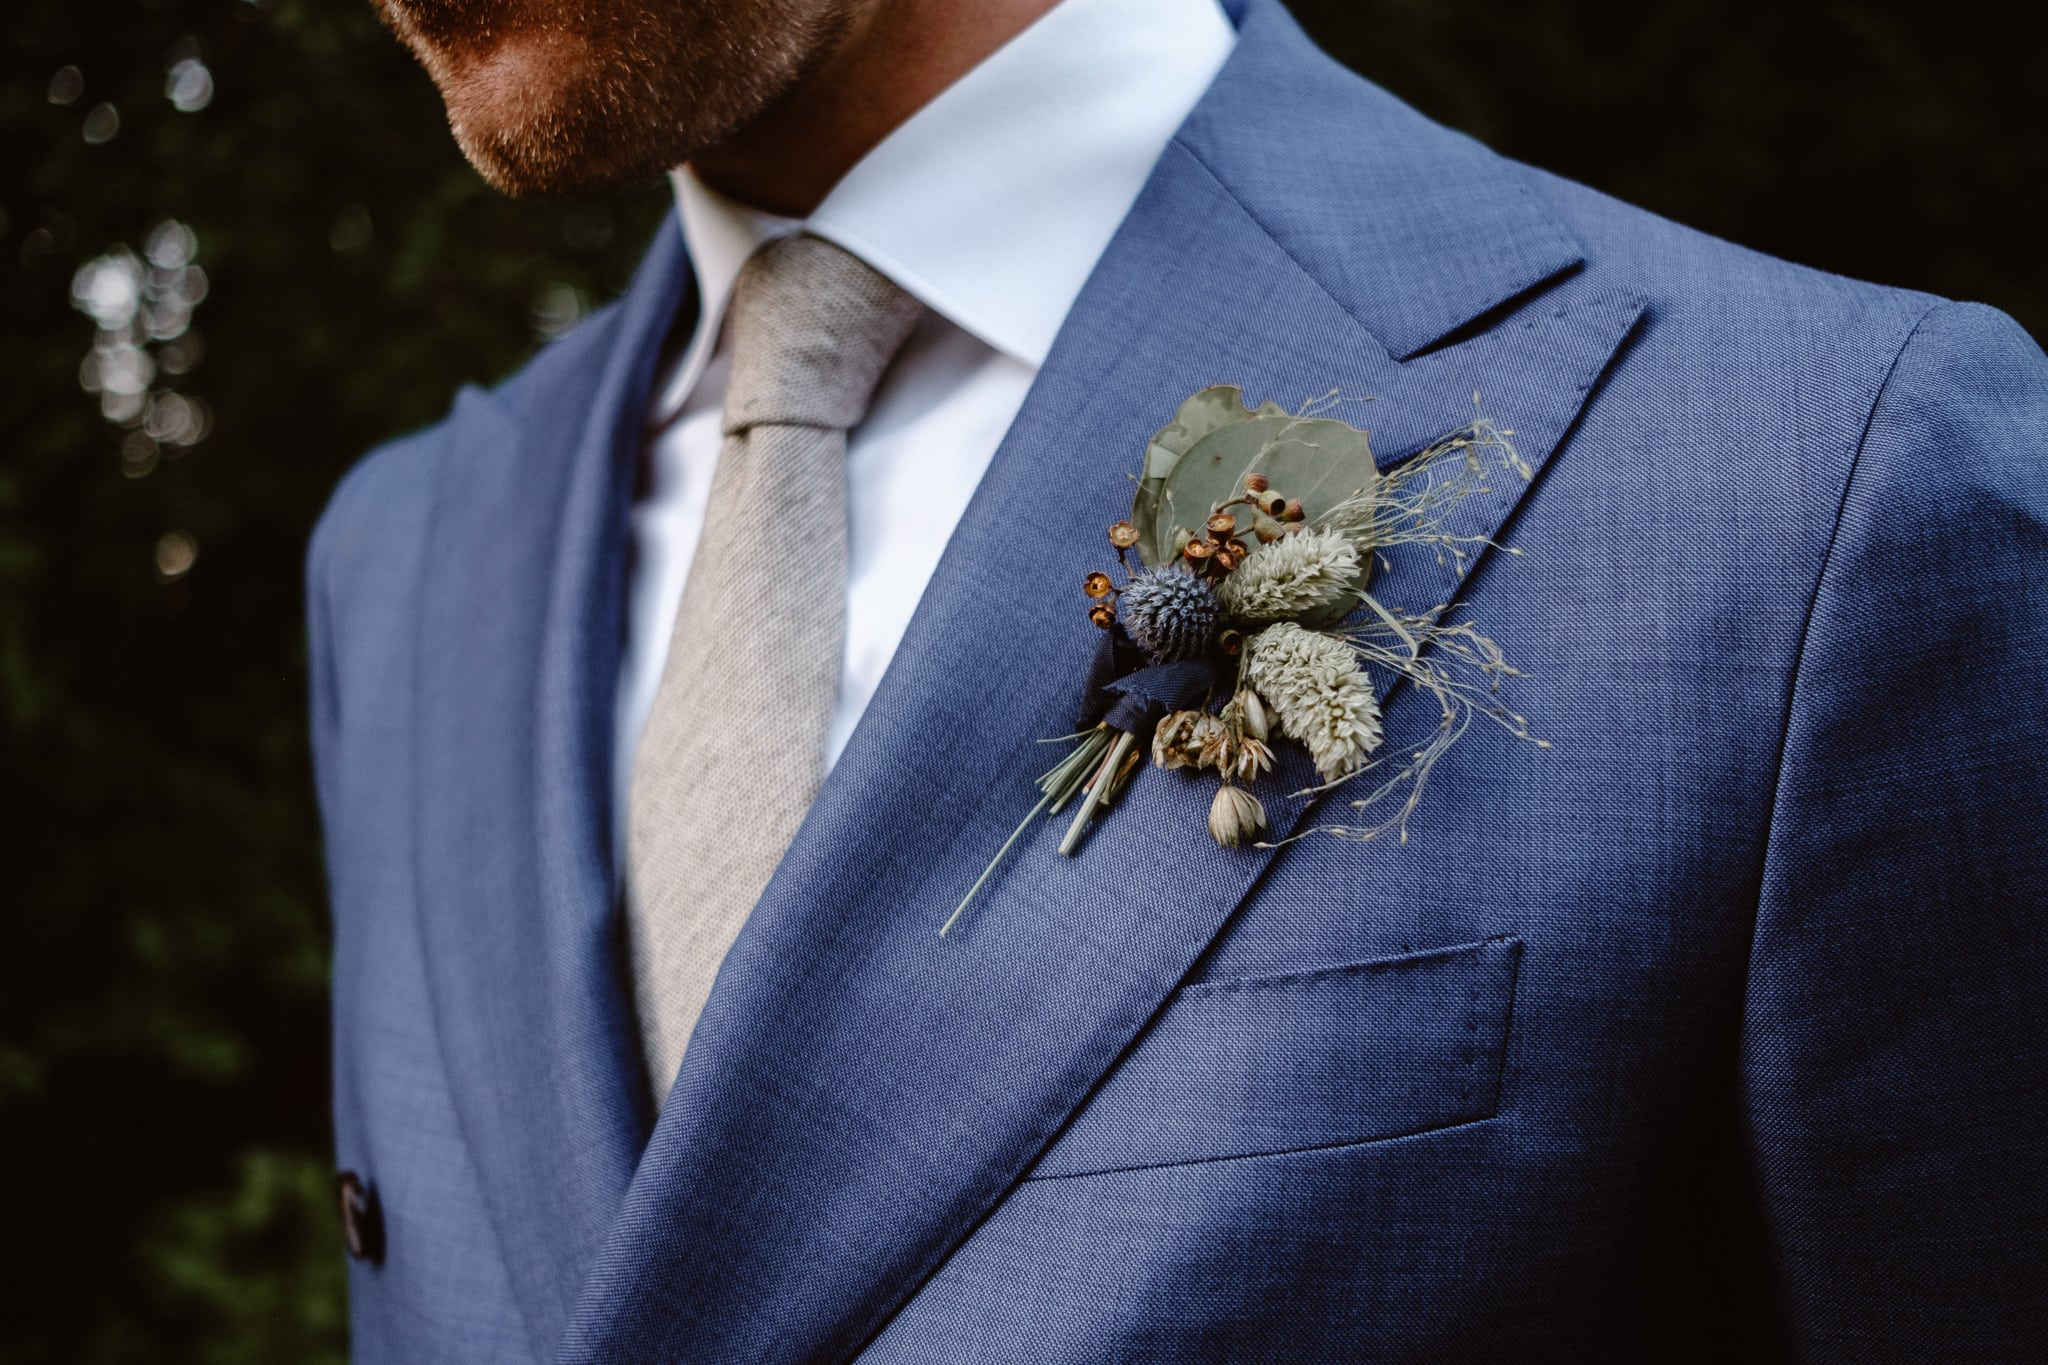 Groom wearing boutonniere by Flora by Nora at Breckenridge Nordic Center wedding, Summit County wedding photographer